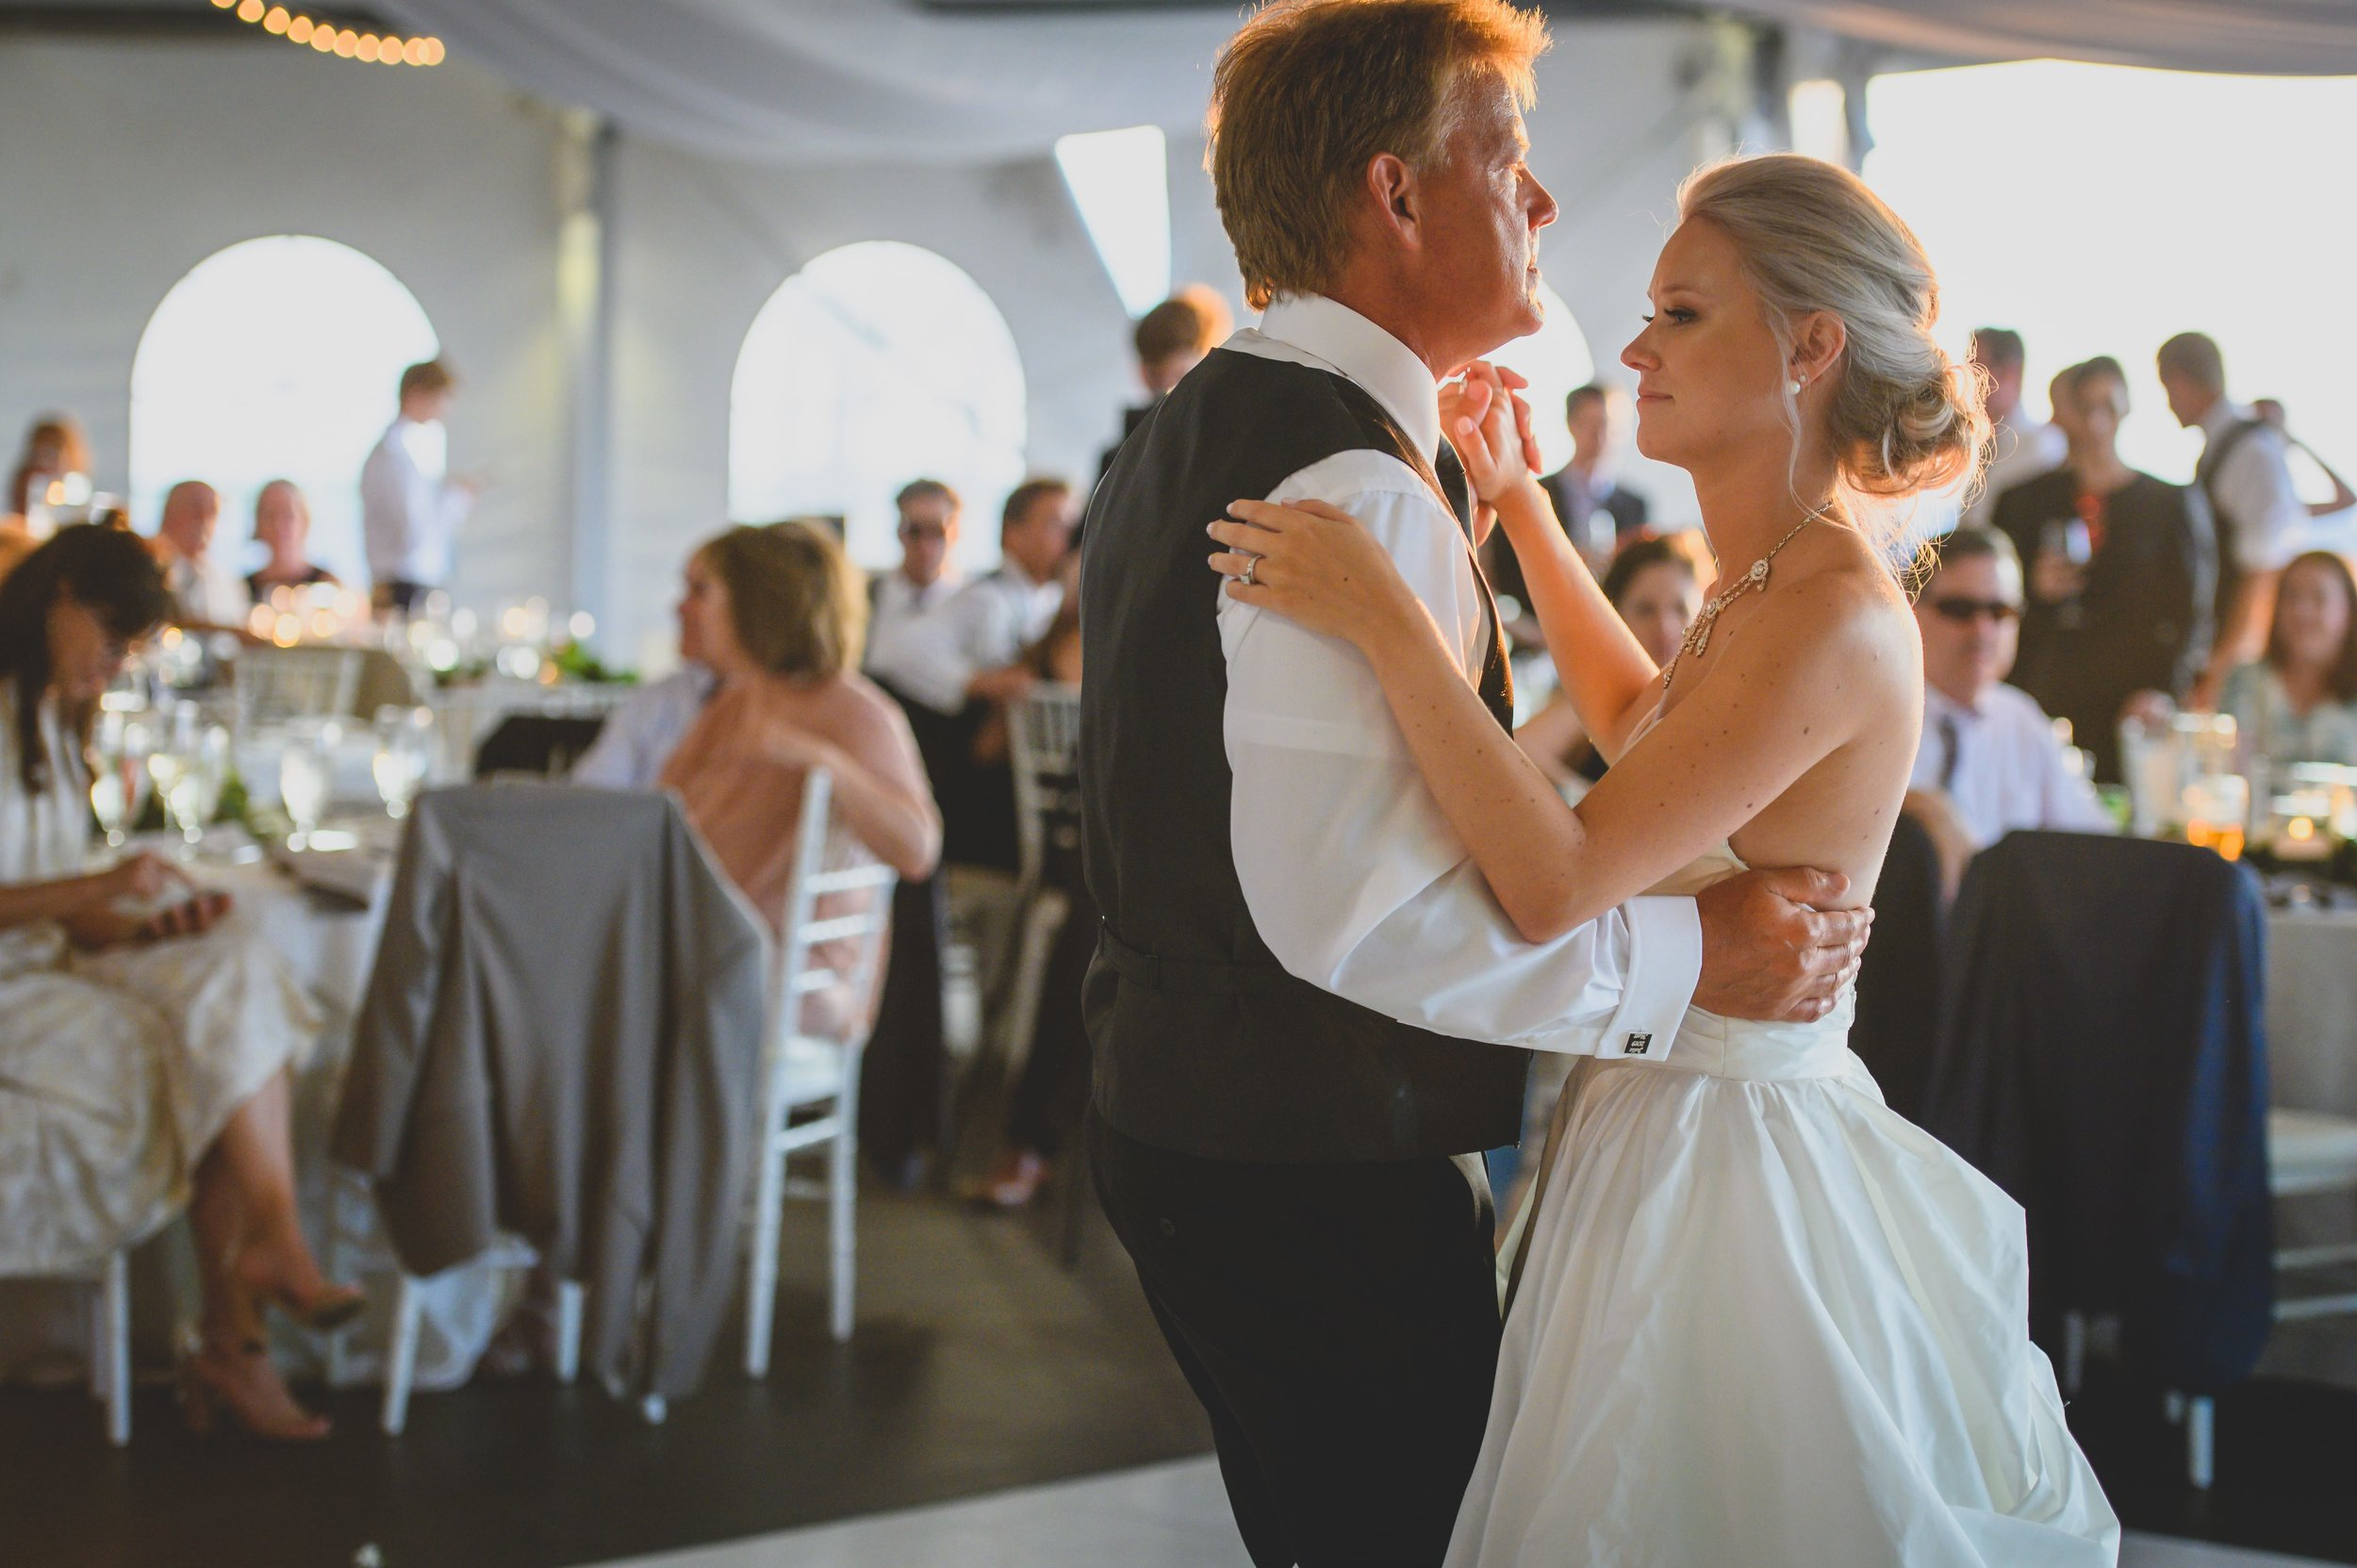 A bride and her father performing the daddy-daughter dance.